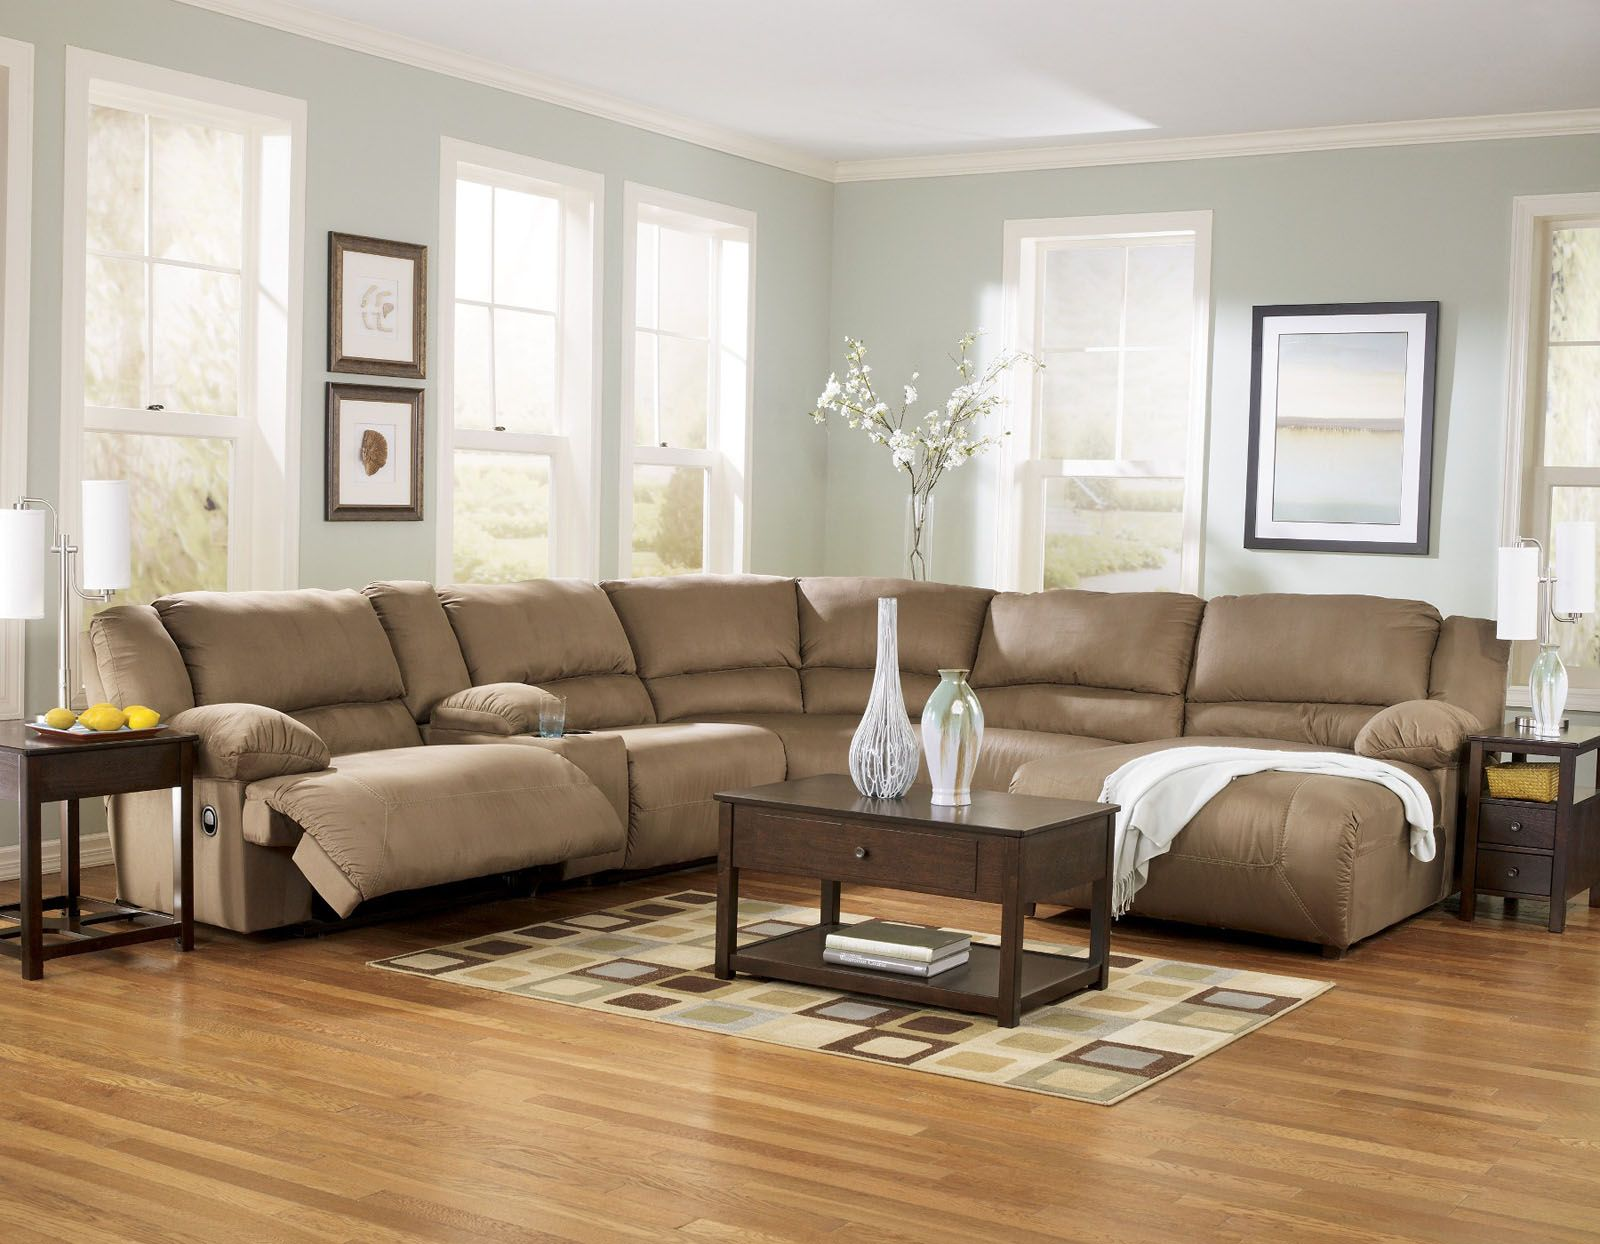 Living Room Colors With Wood Floors apartment living room ideas brown - pueblosinfronteras